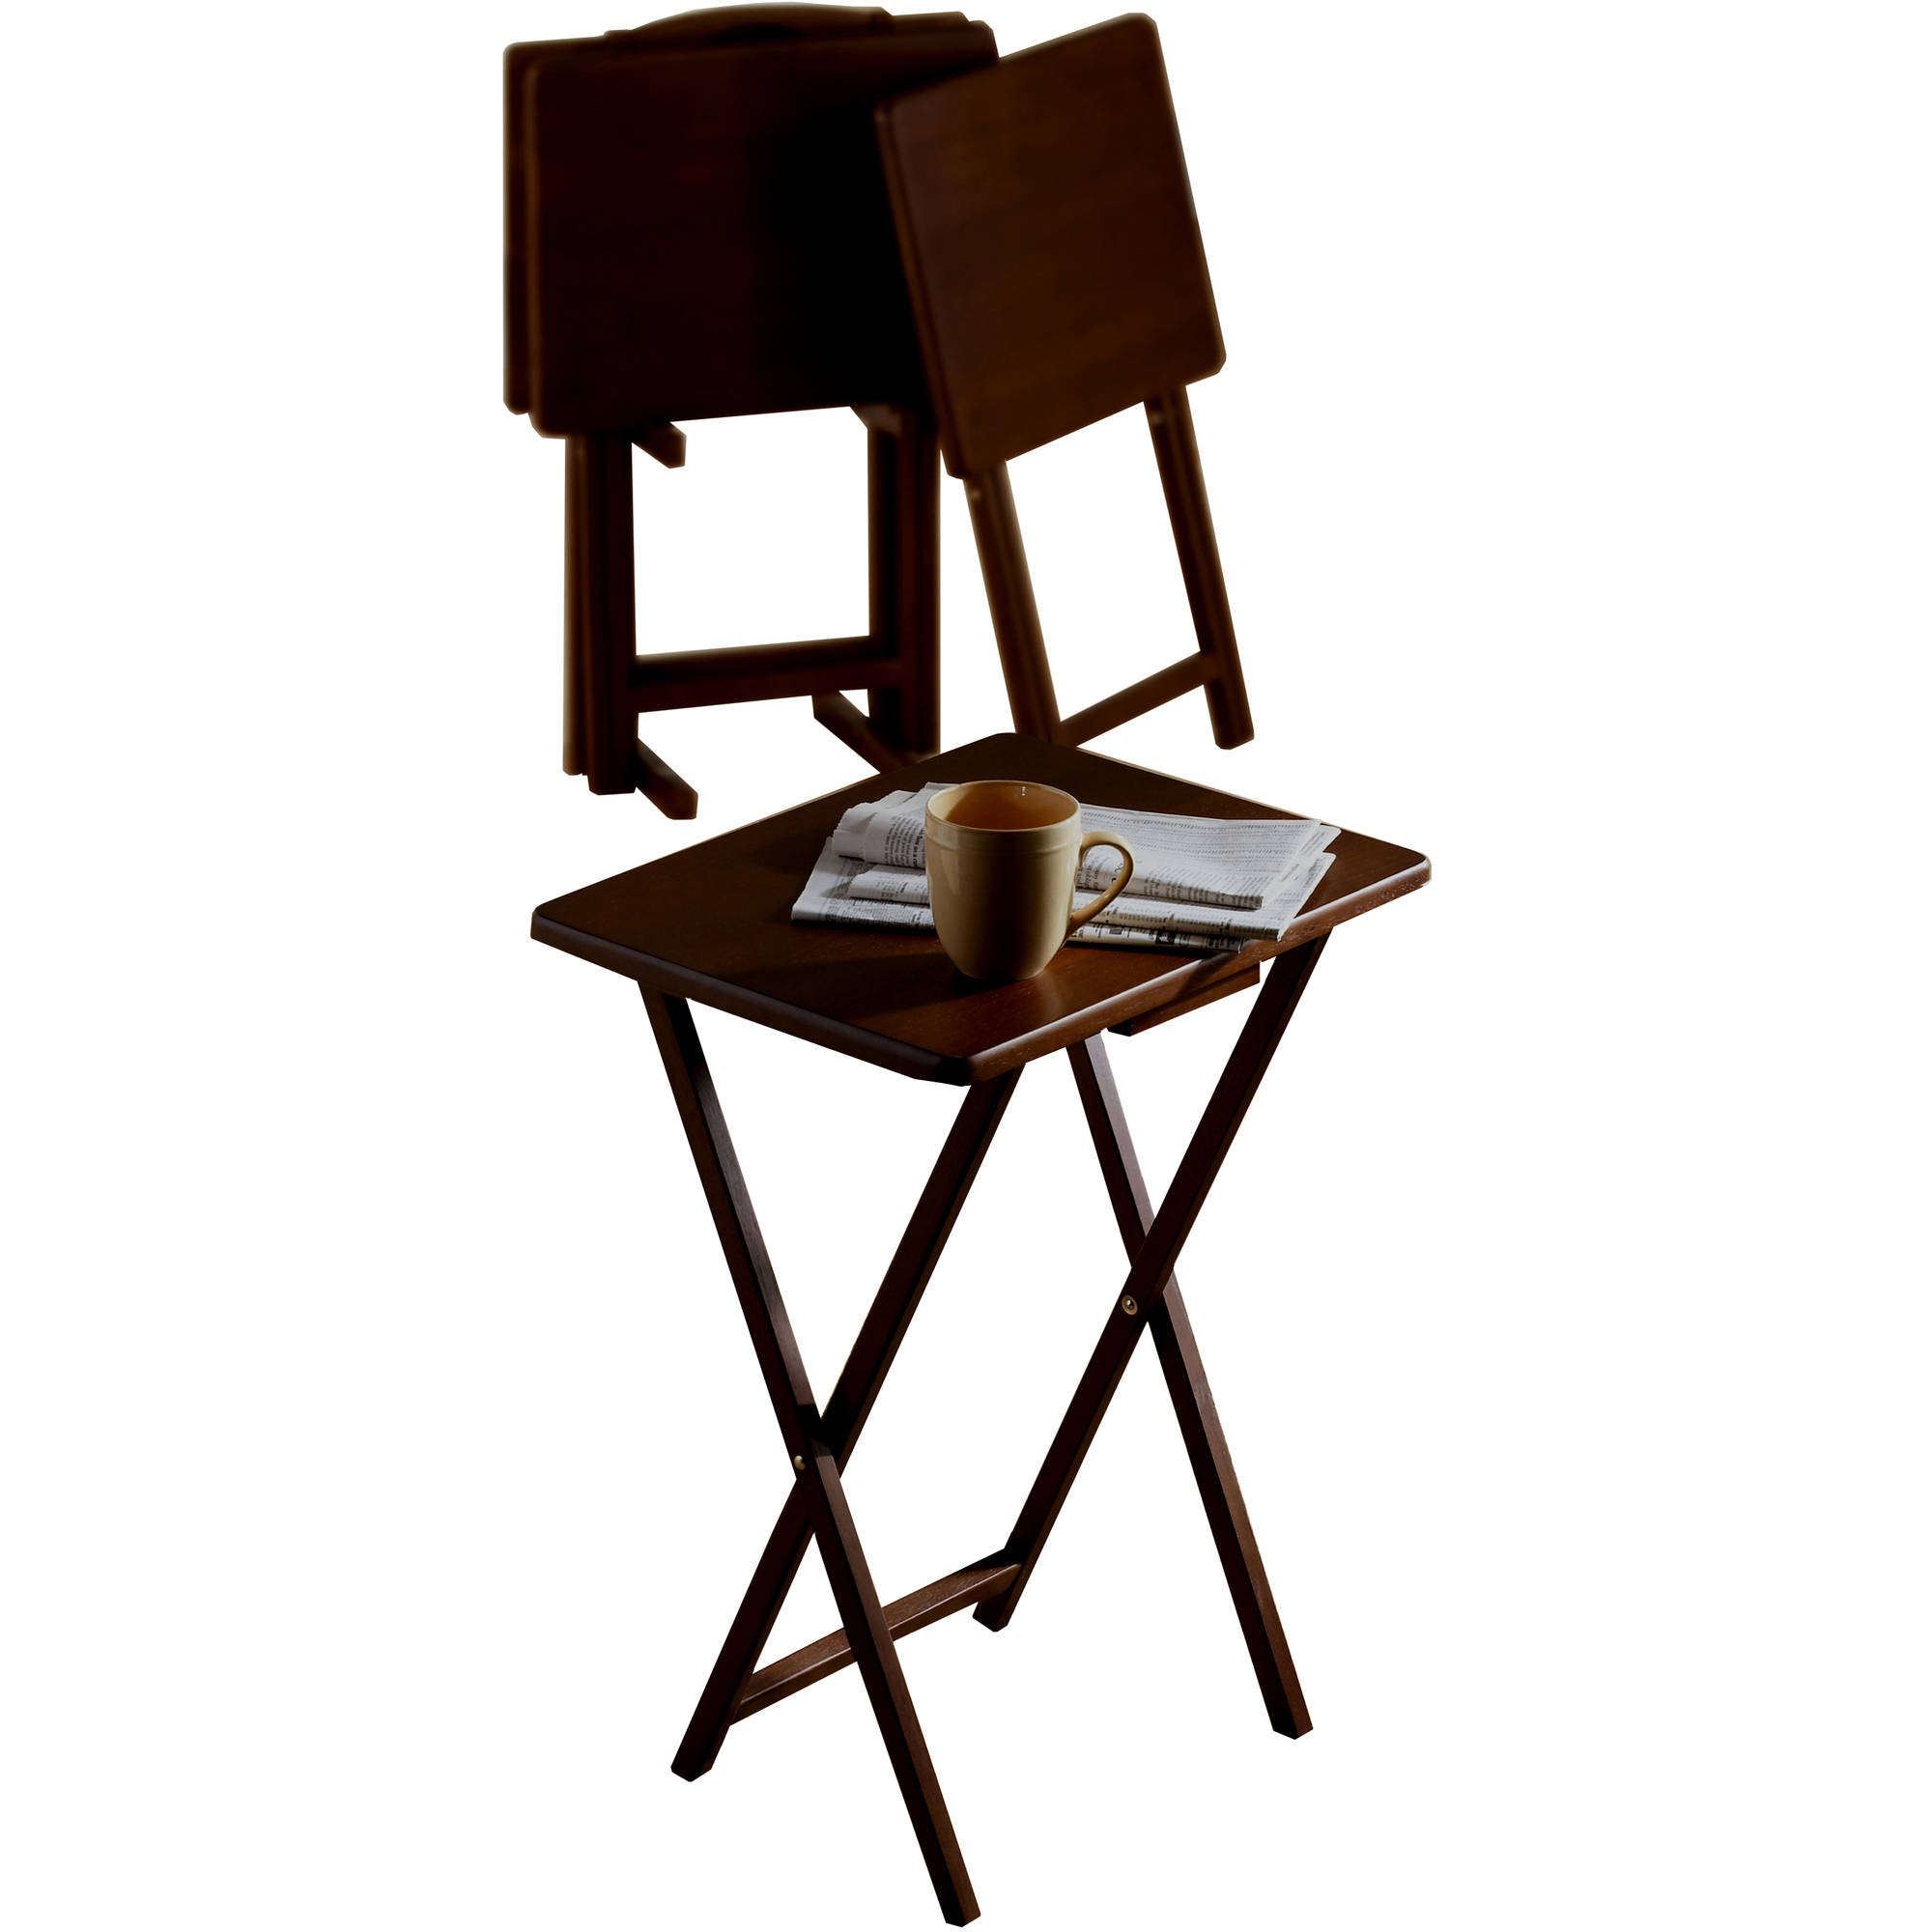 5 Piece Tray Table Set Folding Wood Tv Snack Dinner Couch Laptop Stand New